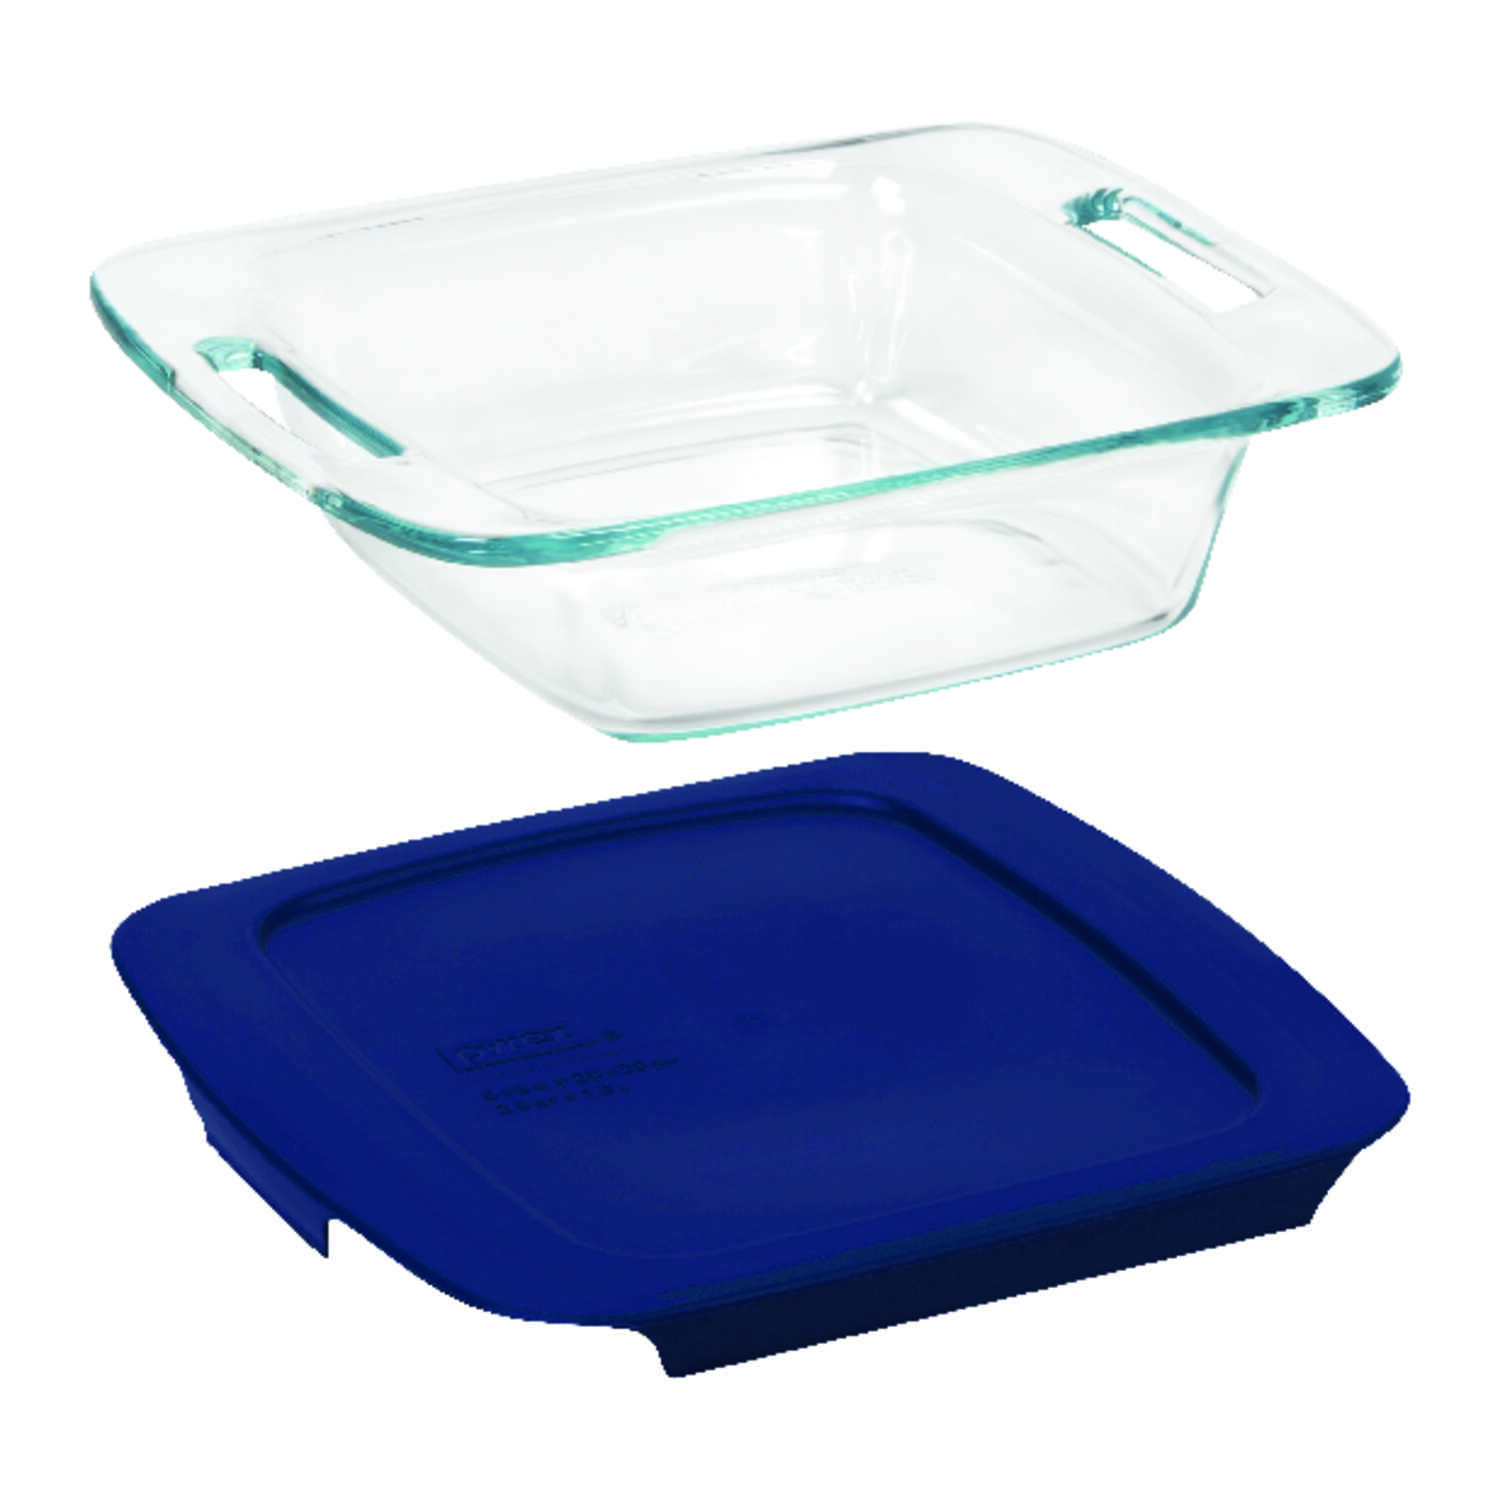 Pyrex  8 in. W x 8 in. L Baking Dish  Blue/Clear